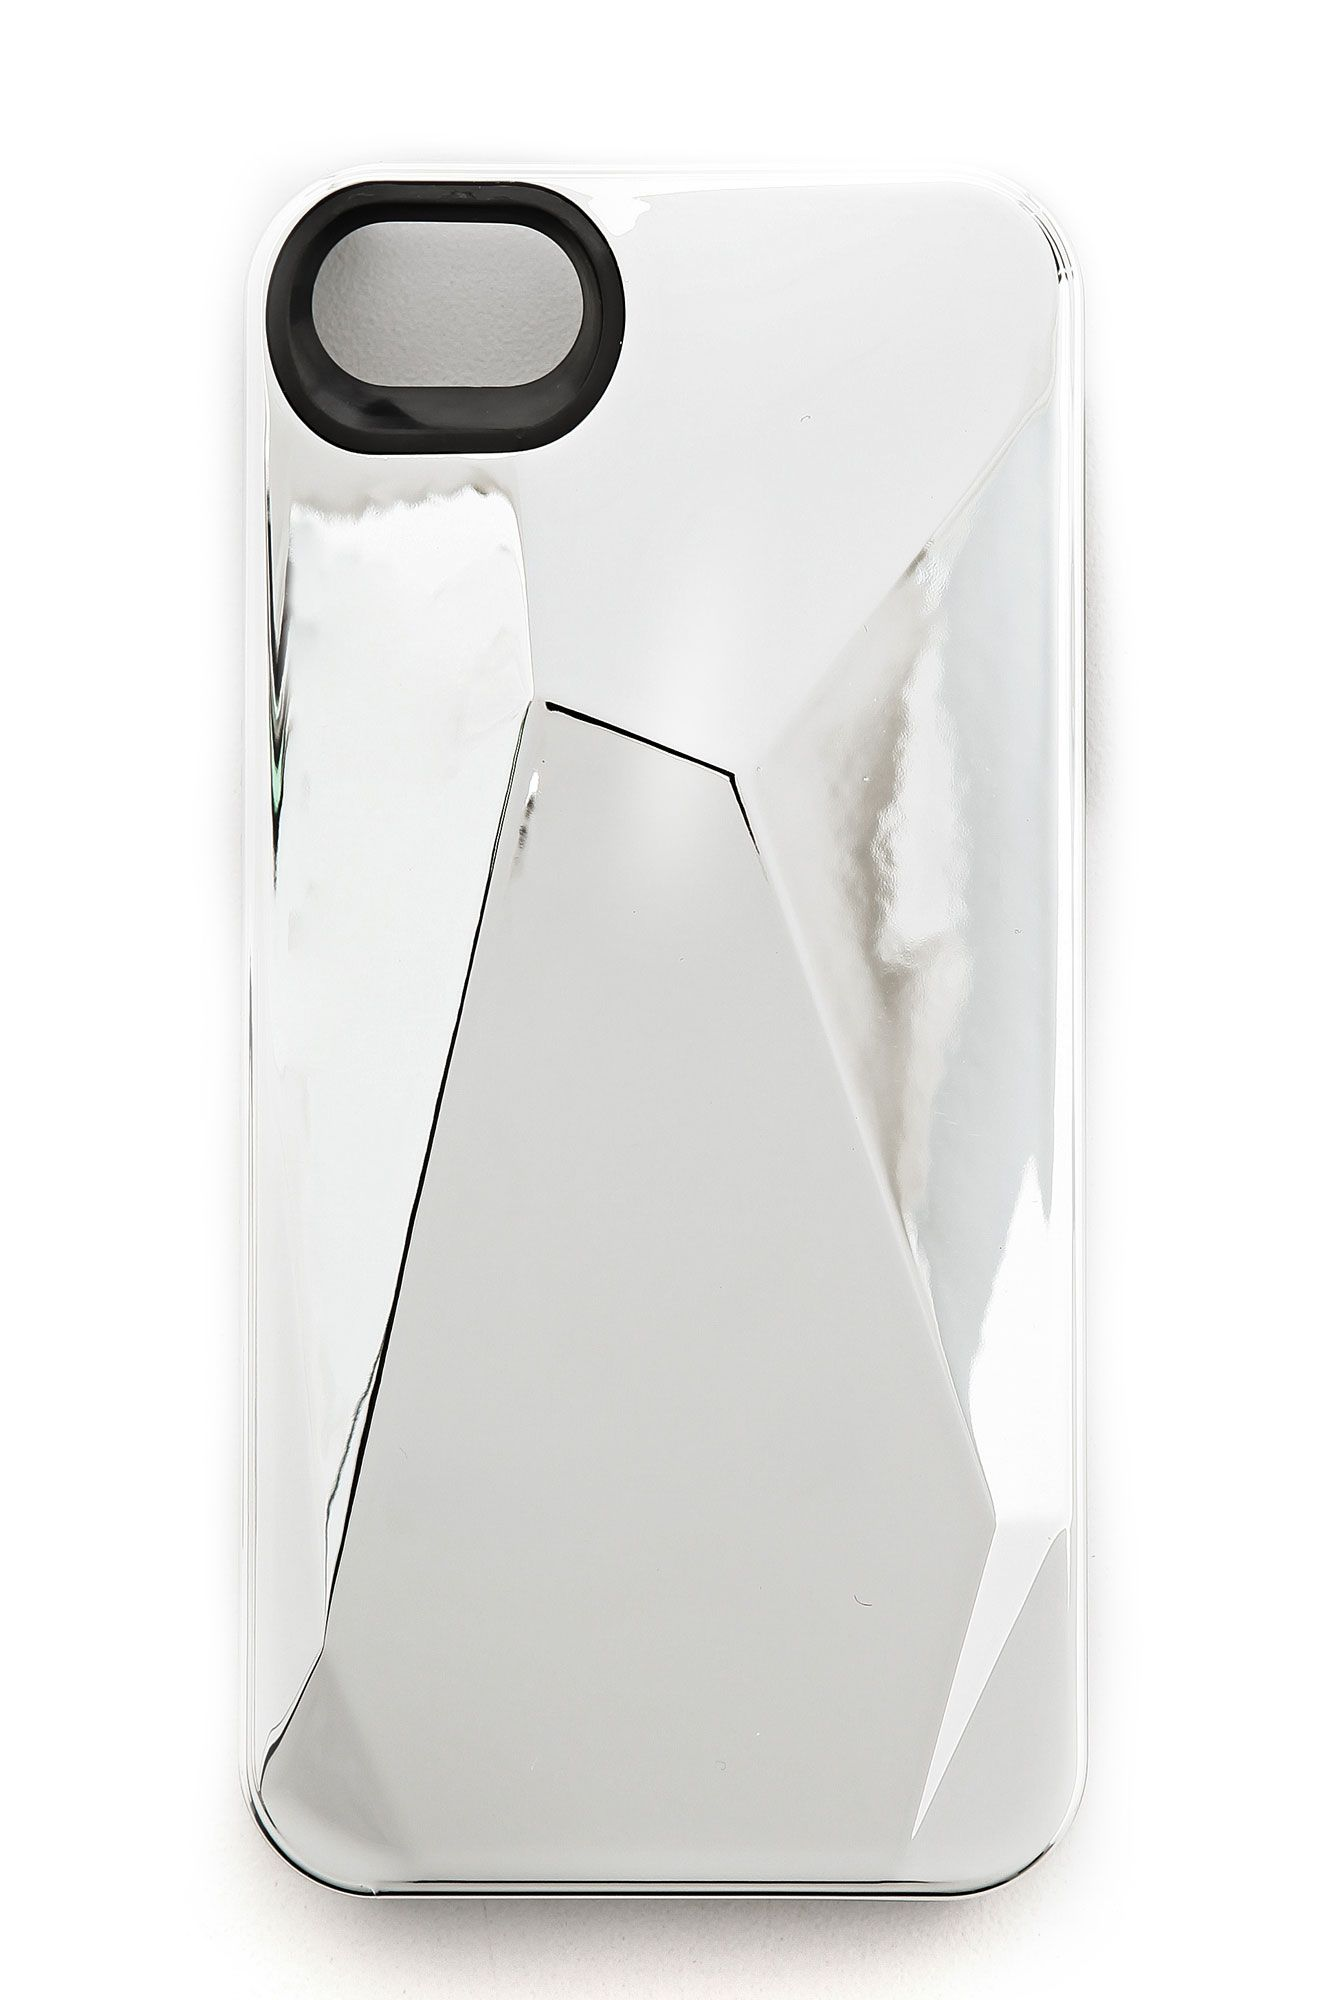 best bet marc by marc jacobs iphone case the cut. Black Bedroom Furniture Sets. Home Design Ideas